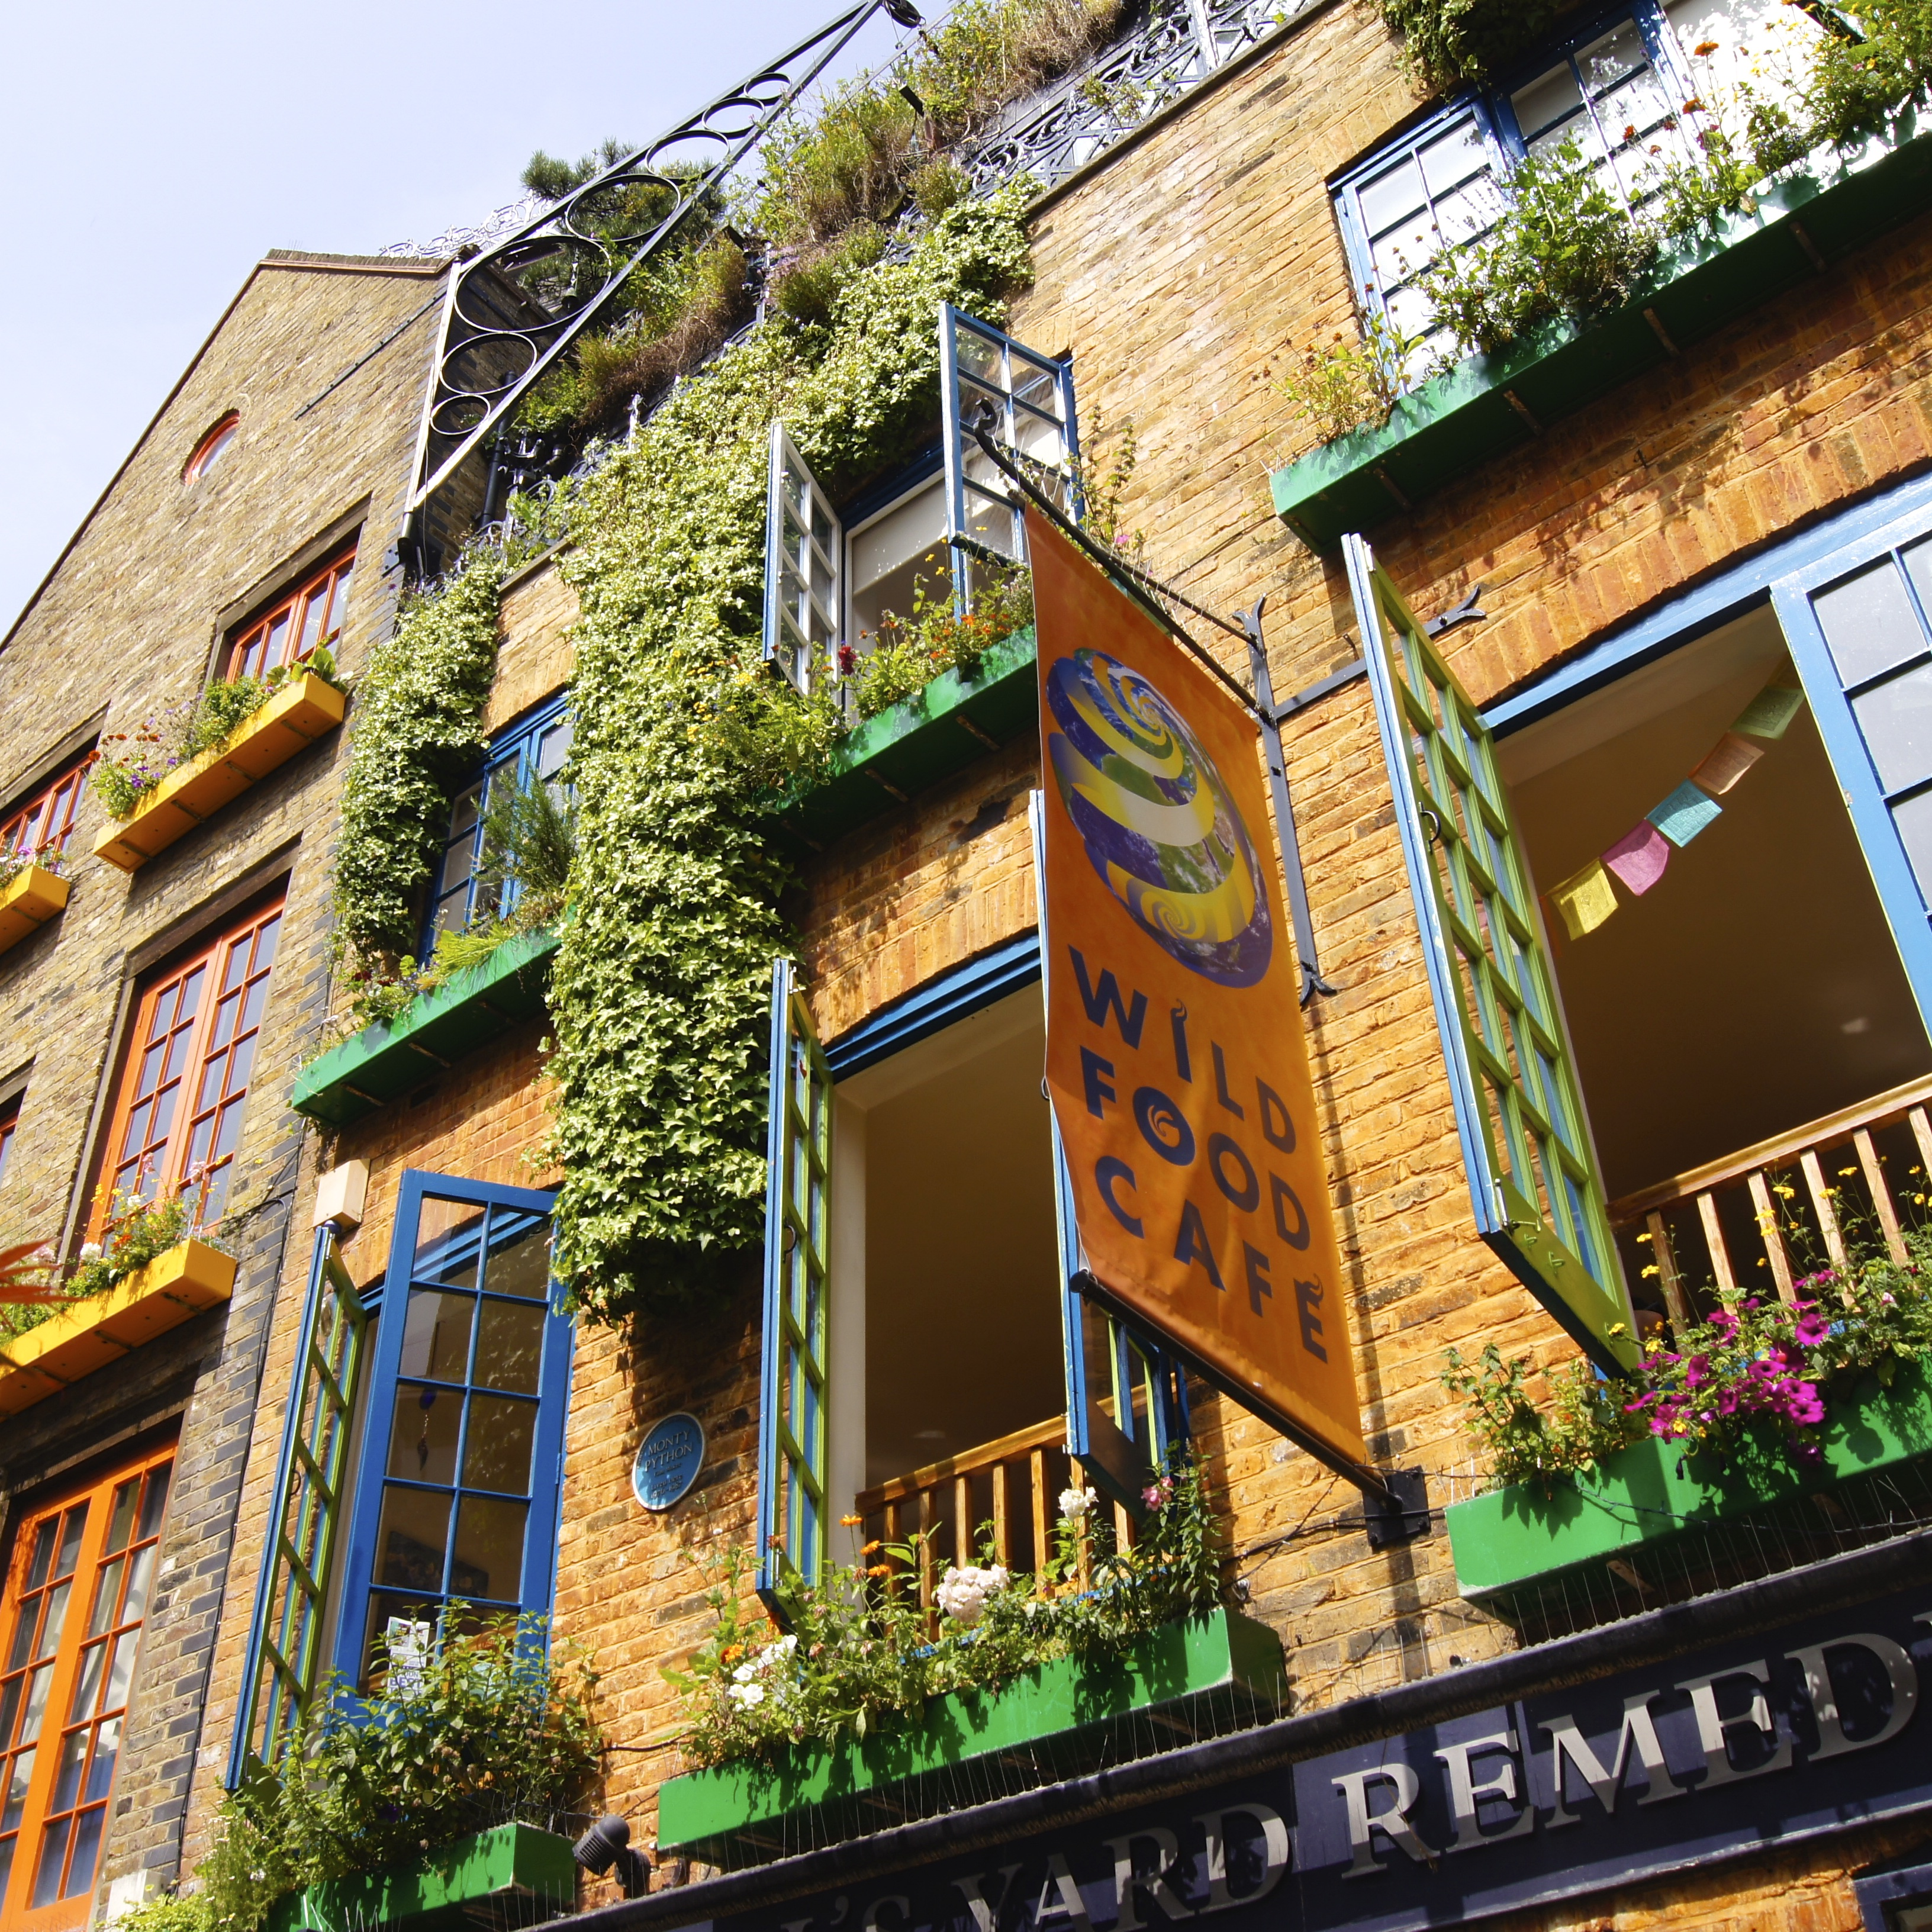 Neal's Yard and Covent Garden – My Day Trip to London PART 3